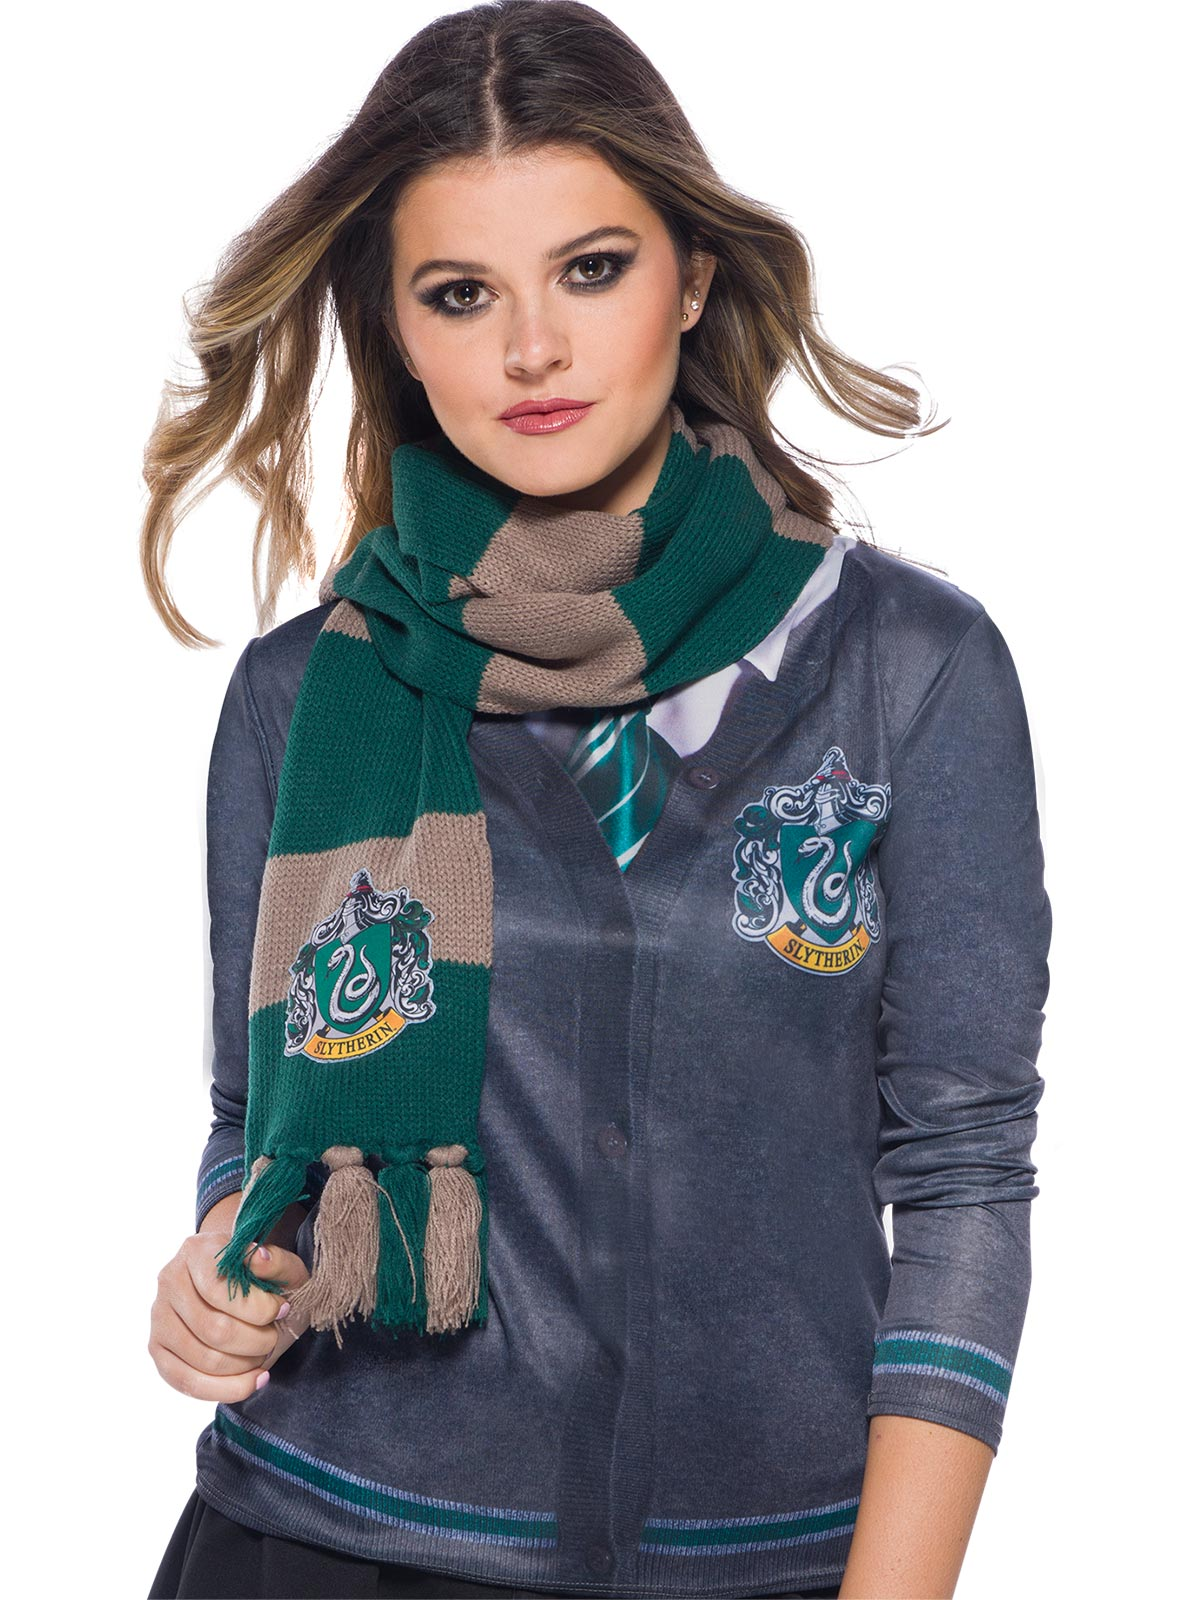 Harry Potter Slytherin House Deluxe Scarf - Buy Online Only